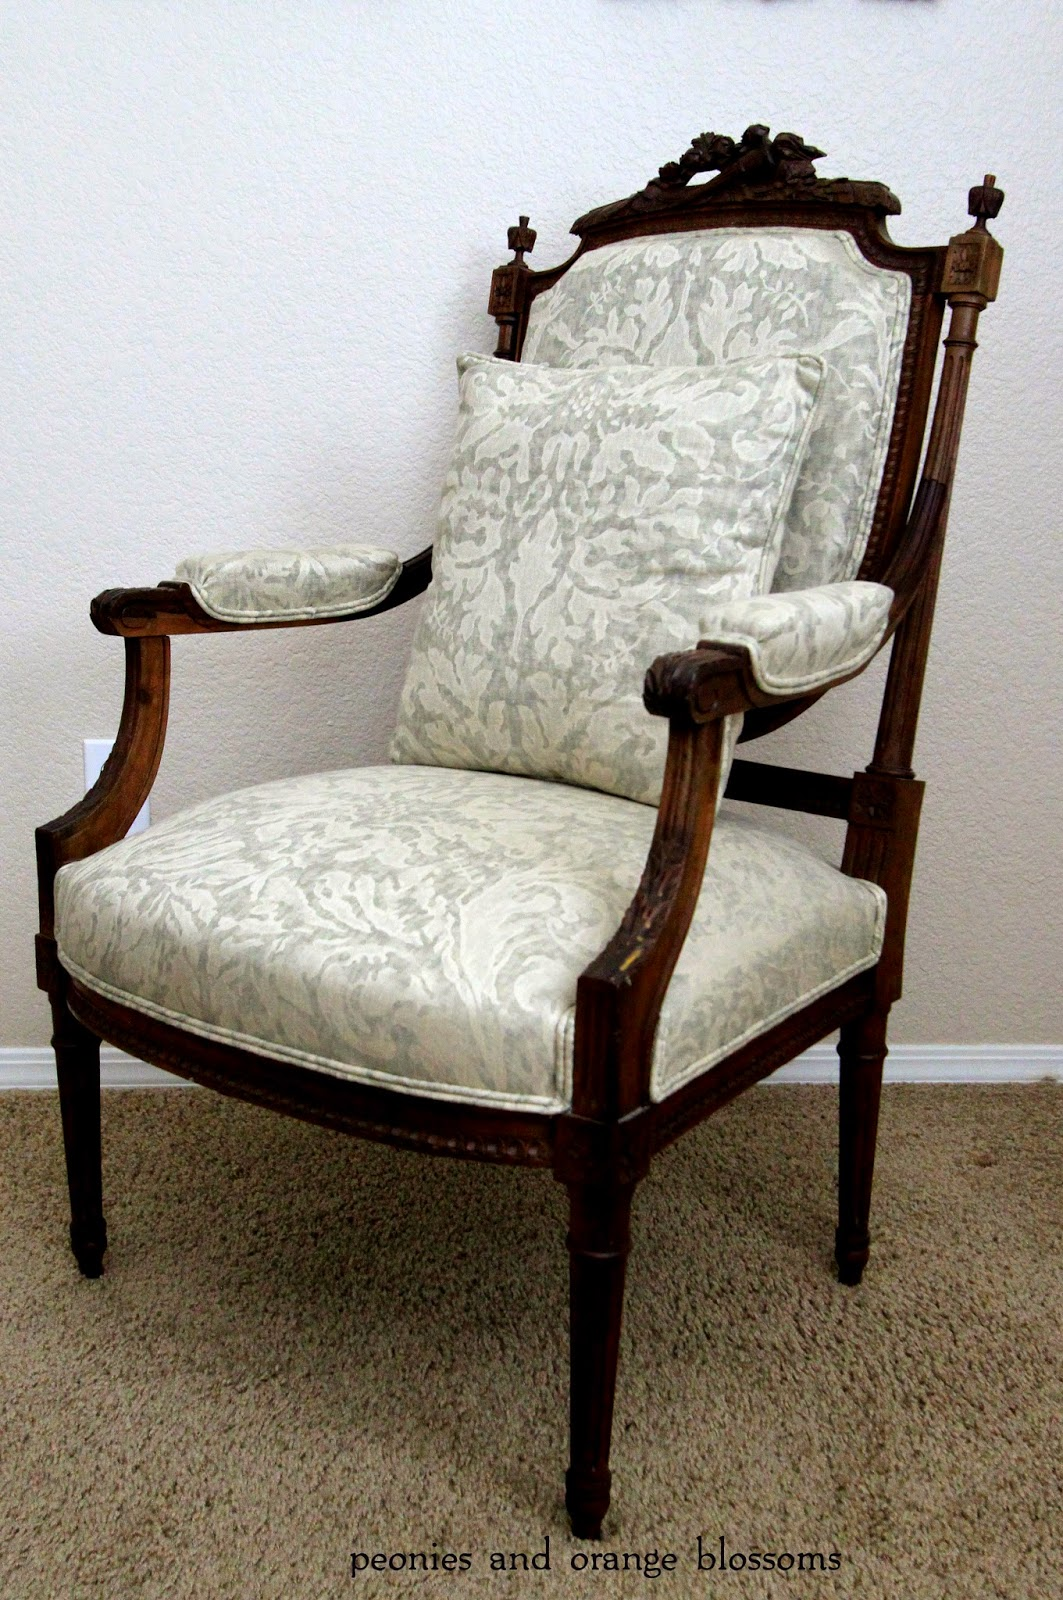 Antique french chair - What I Think It Unusual About The Chair Is The Dark Wood I Haven T Seen Too Many French Chairs With Dark Wood Everything Is Light Colored Wood